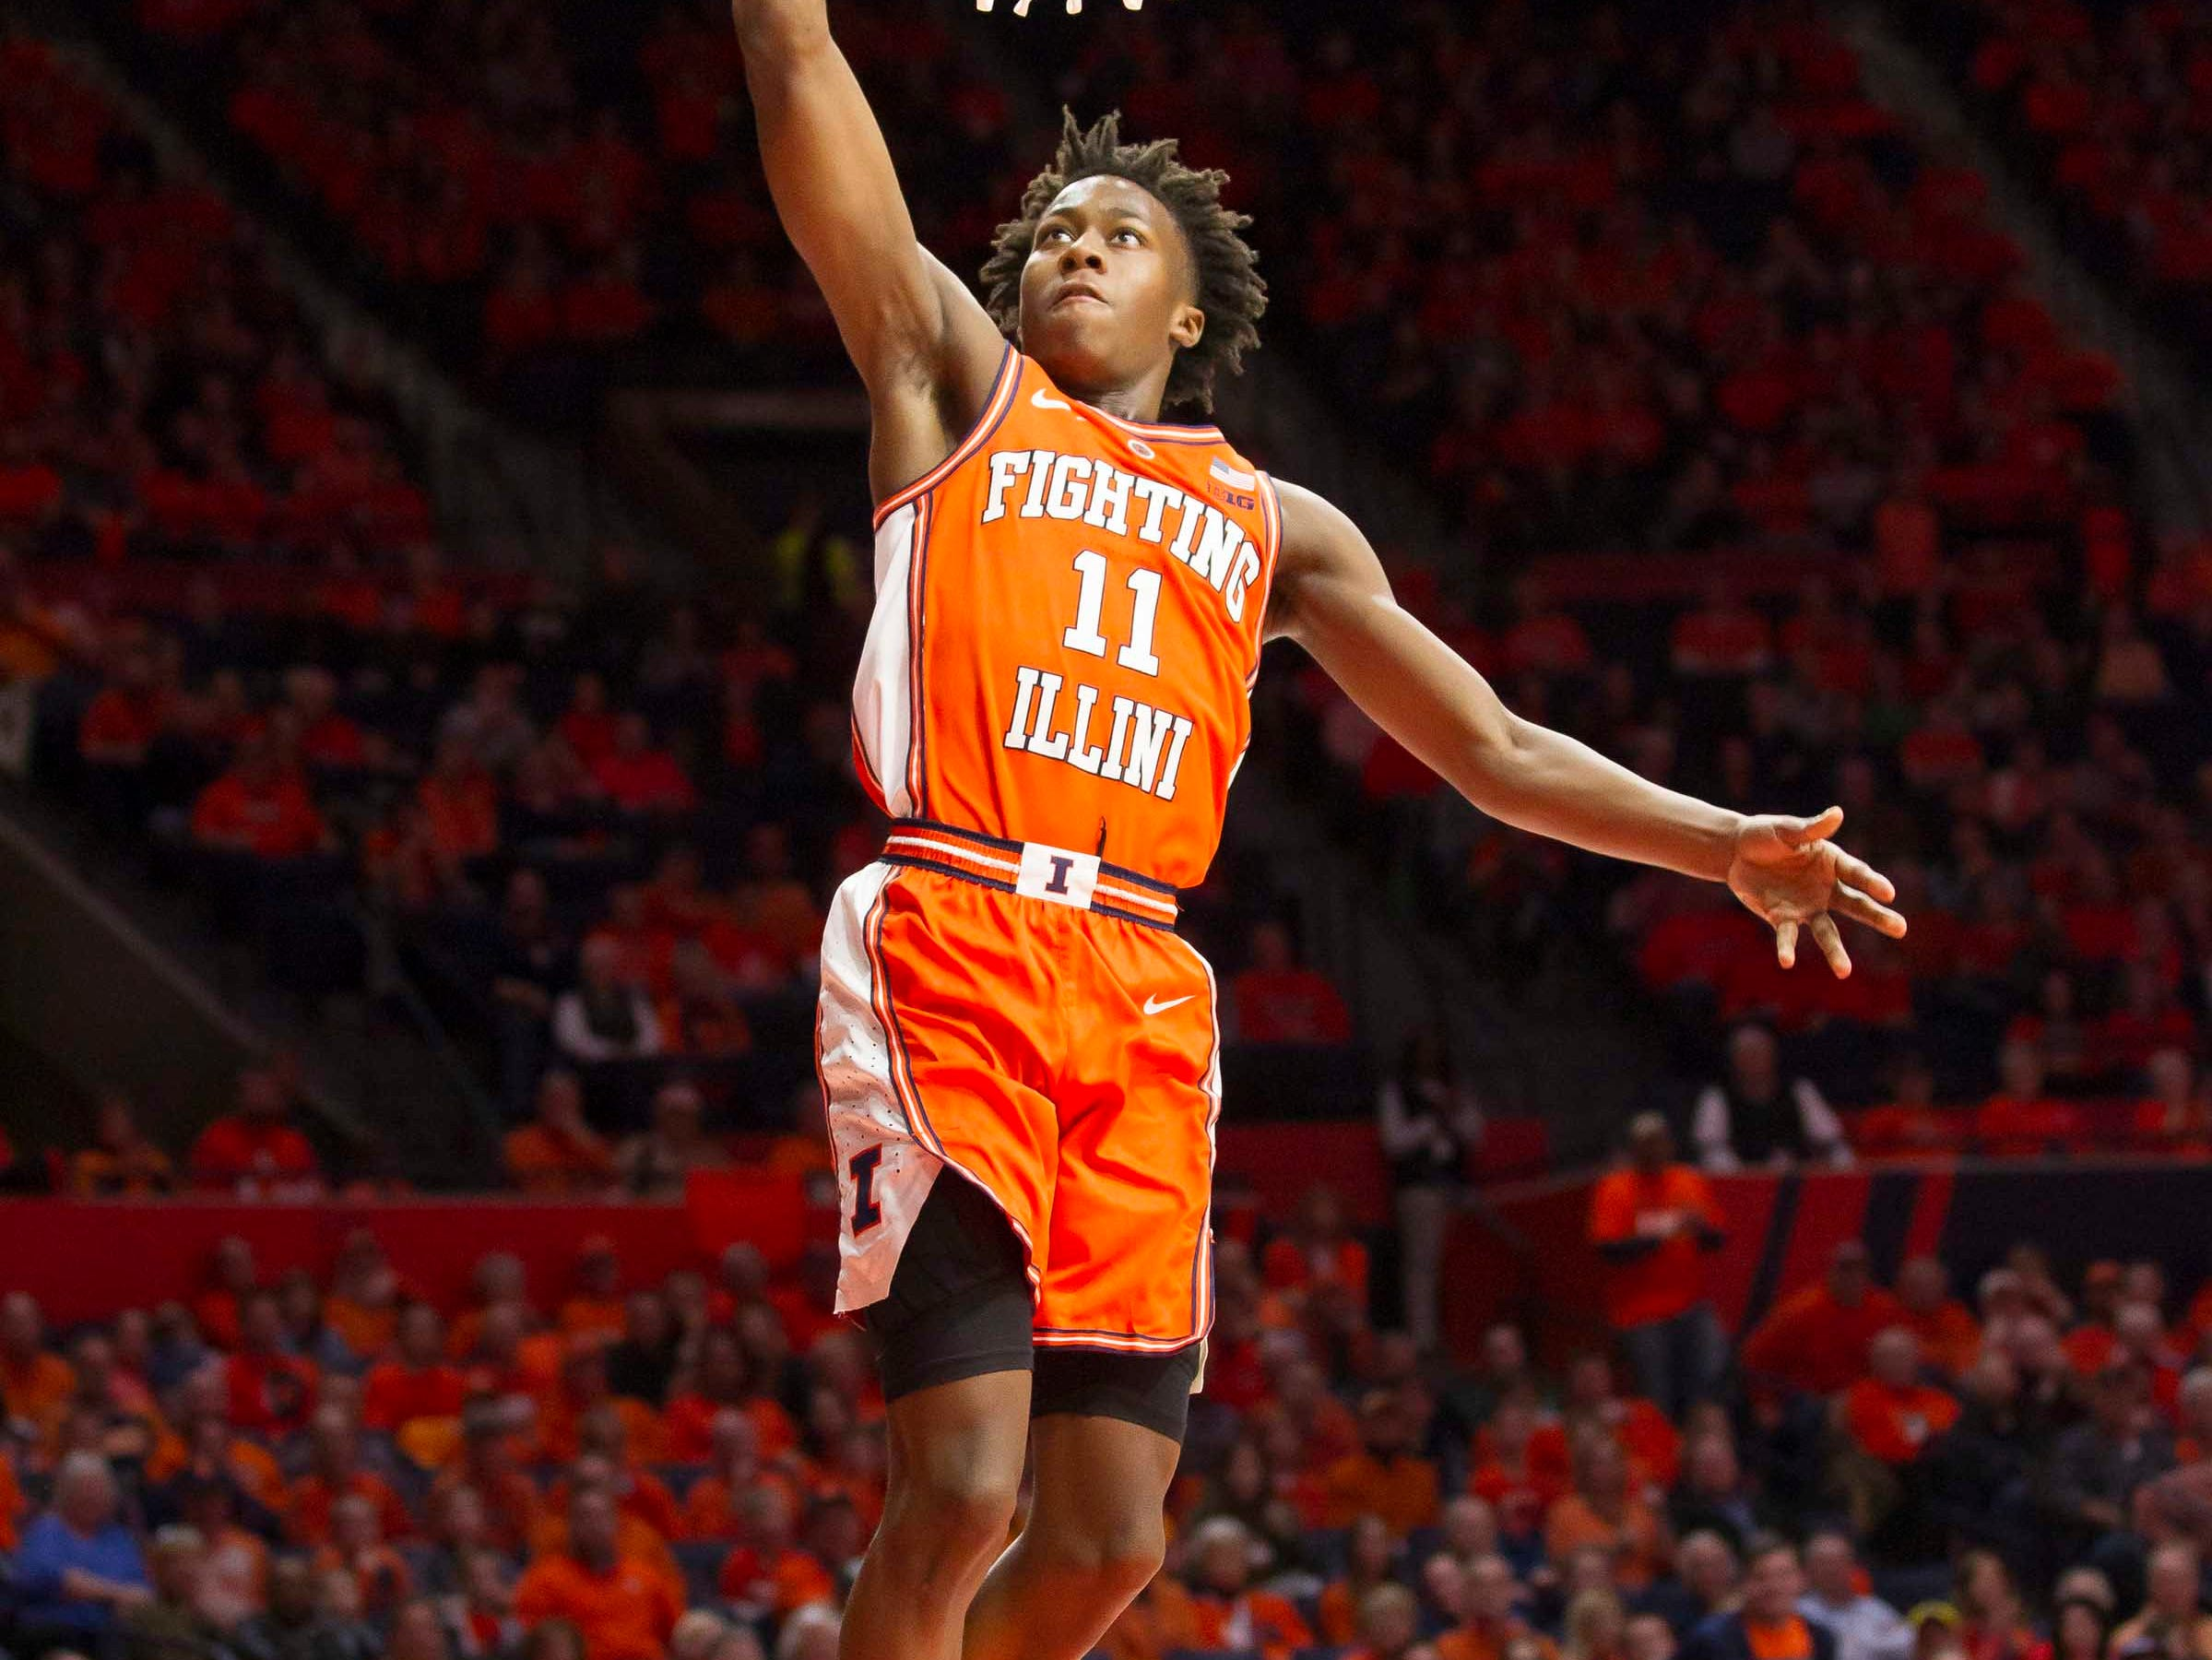 Feb 5, 2019; Champaign, IL, USA; Illinois Fighting Illini guard Ayo Dosunmu (11) dunks the ball during the first half against the Michigan State Spartans at State Farm Center. Mandatory Credit: Mike Granse-USA TODAY Sports